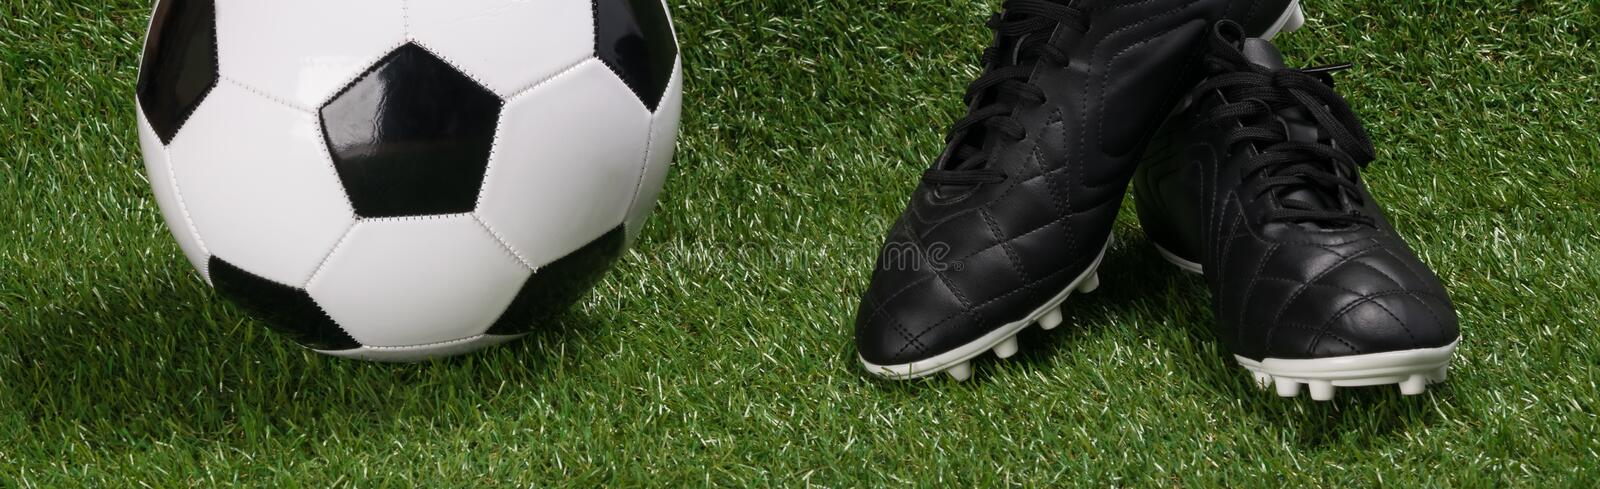 Black sports shoes and a ball for the soccer championship on a long green lawn stock images